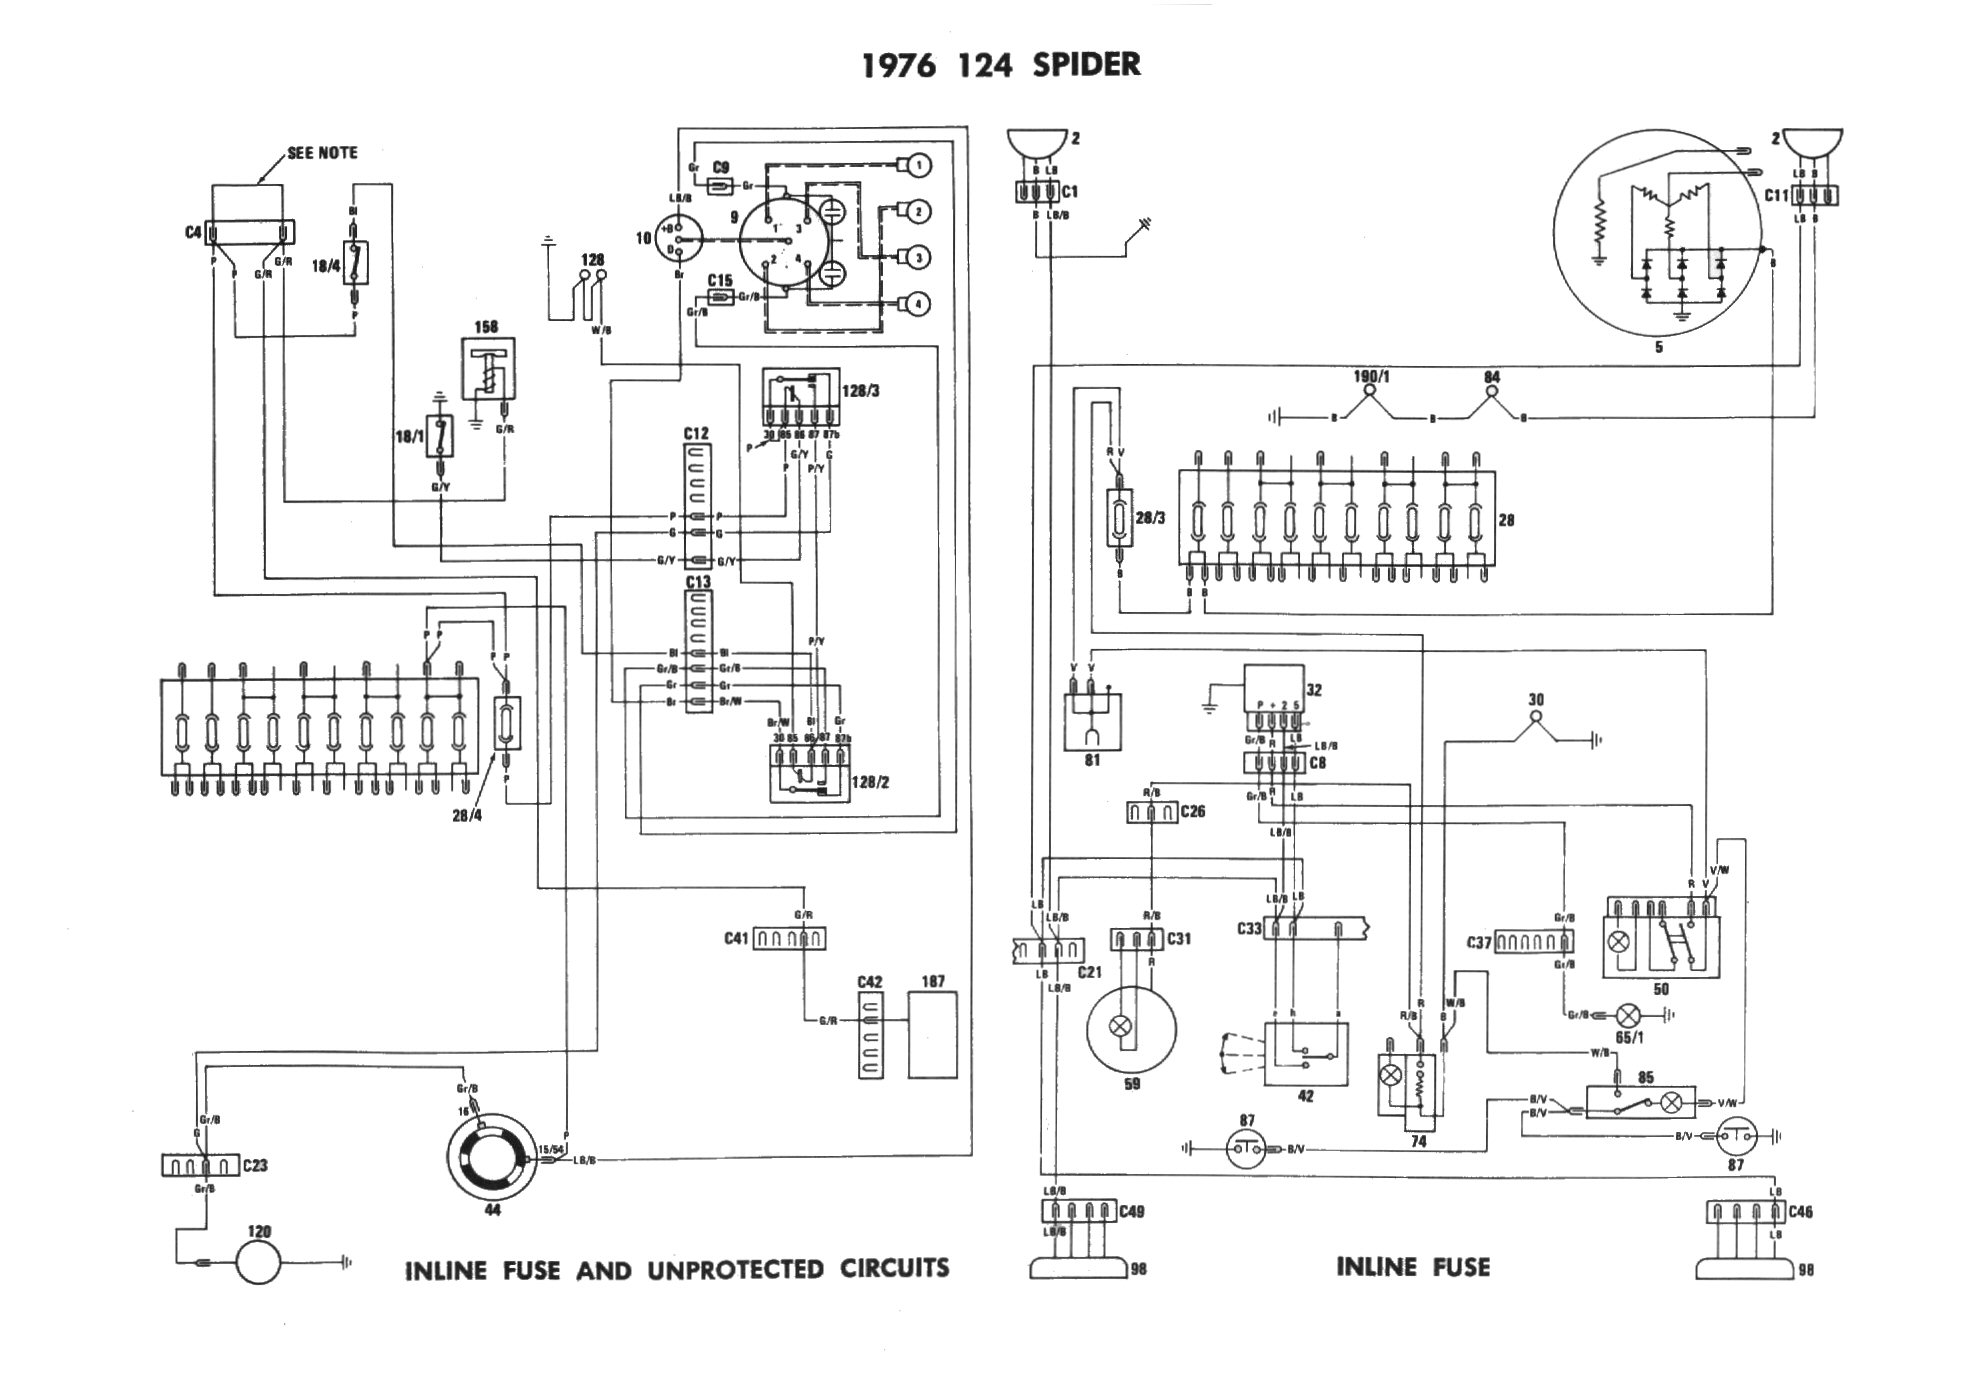 fiat 124 spider spidersweb nl on repeated request electrical rh fiat124spider com 1986 Volvo 740 Wiring-Diagram 1990 Miata Wiring Harness Diagram